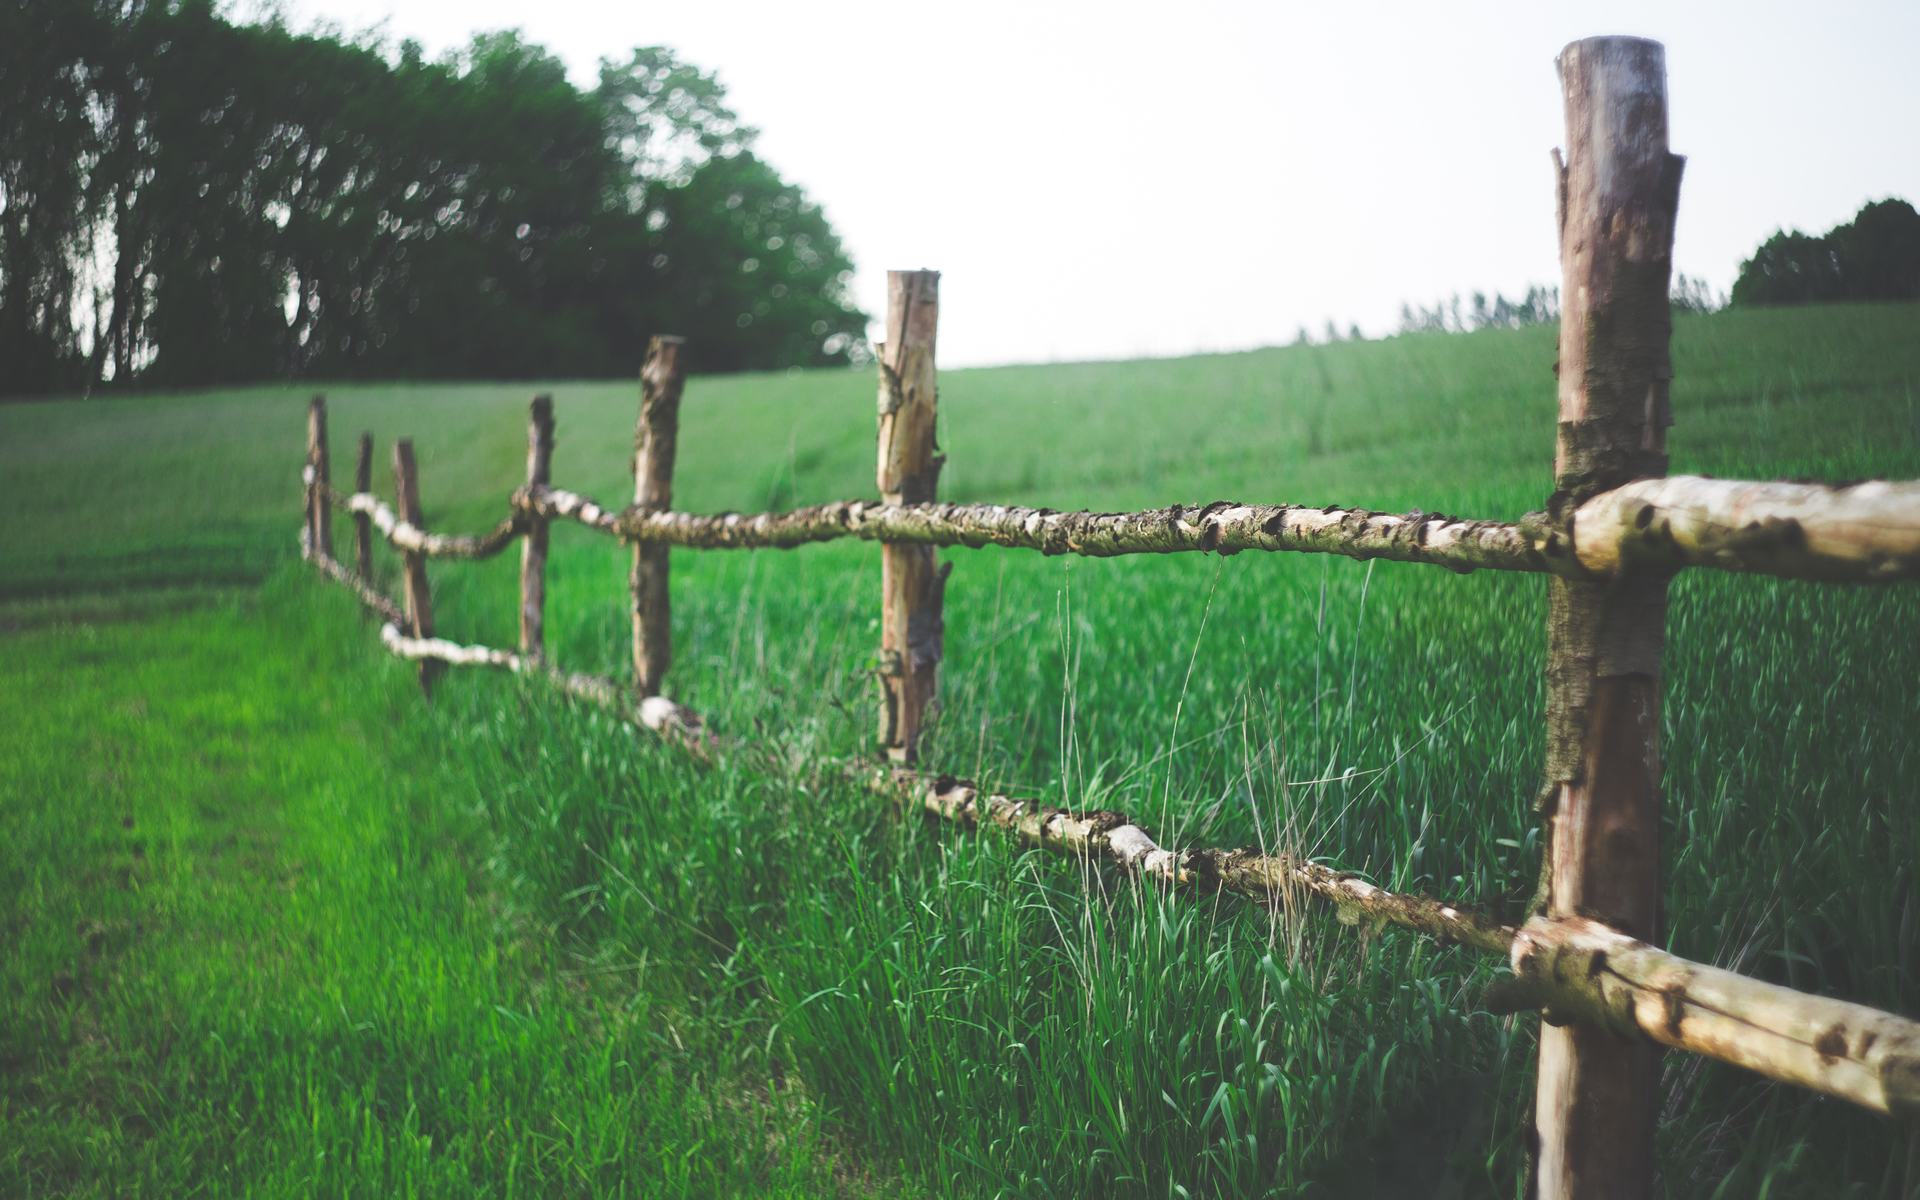 kaboompics.com_Old-wooden-rural-fence-in-the-village-1920x1200